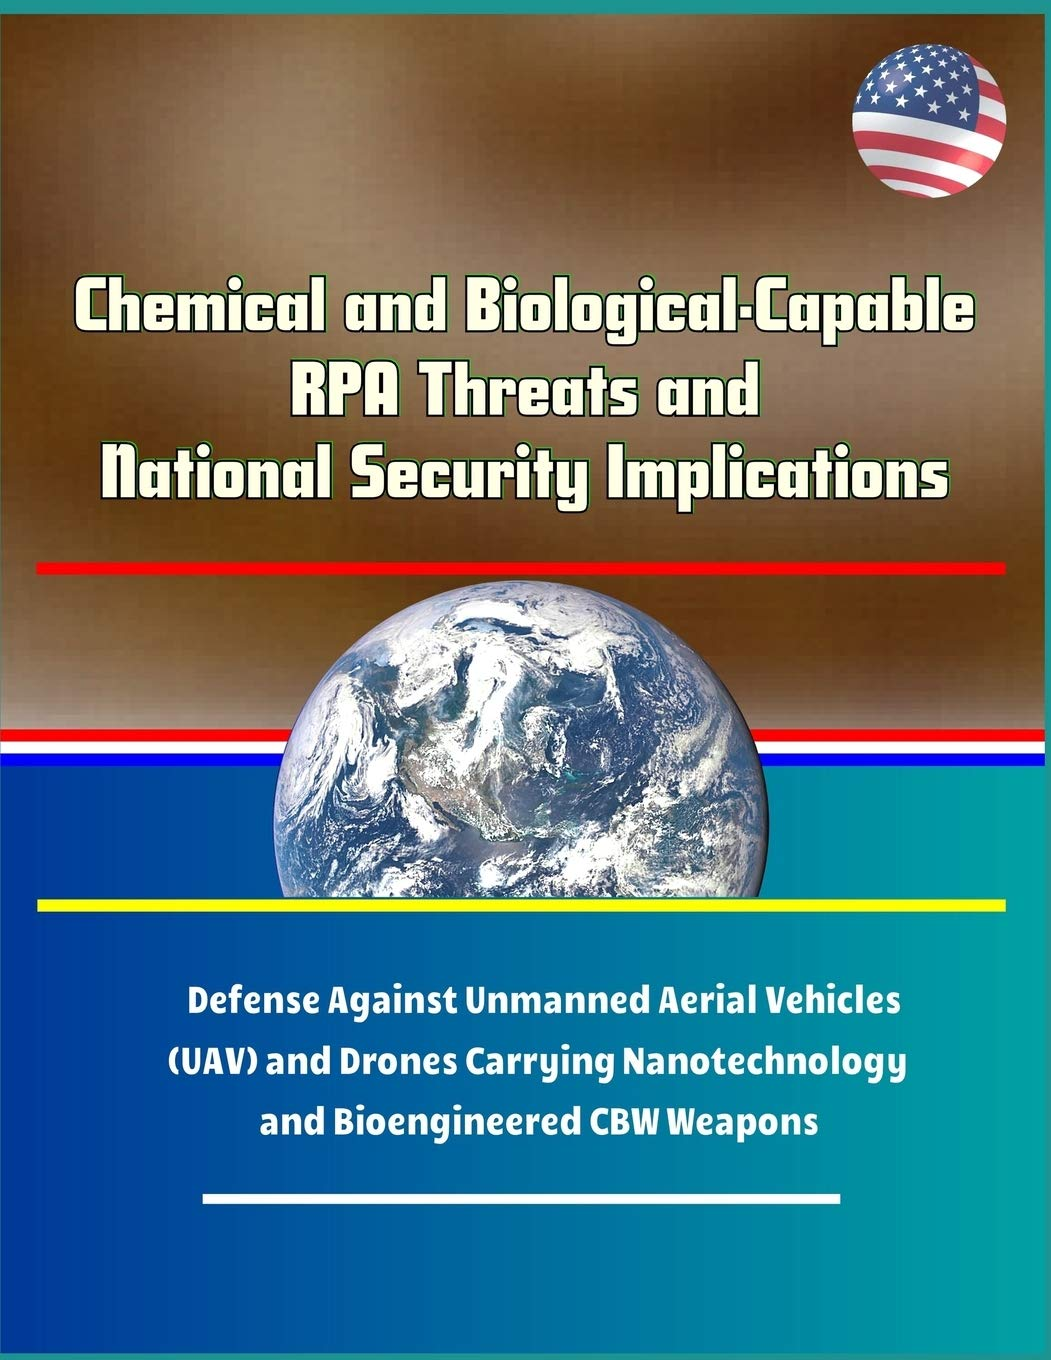 Chemical and Biological-Capable RPA Threats and National